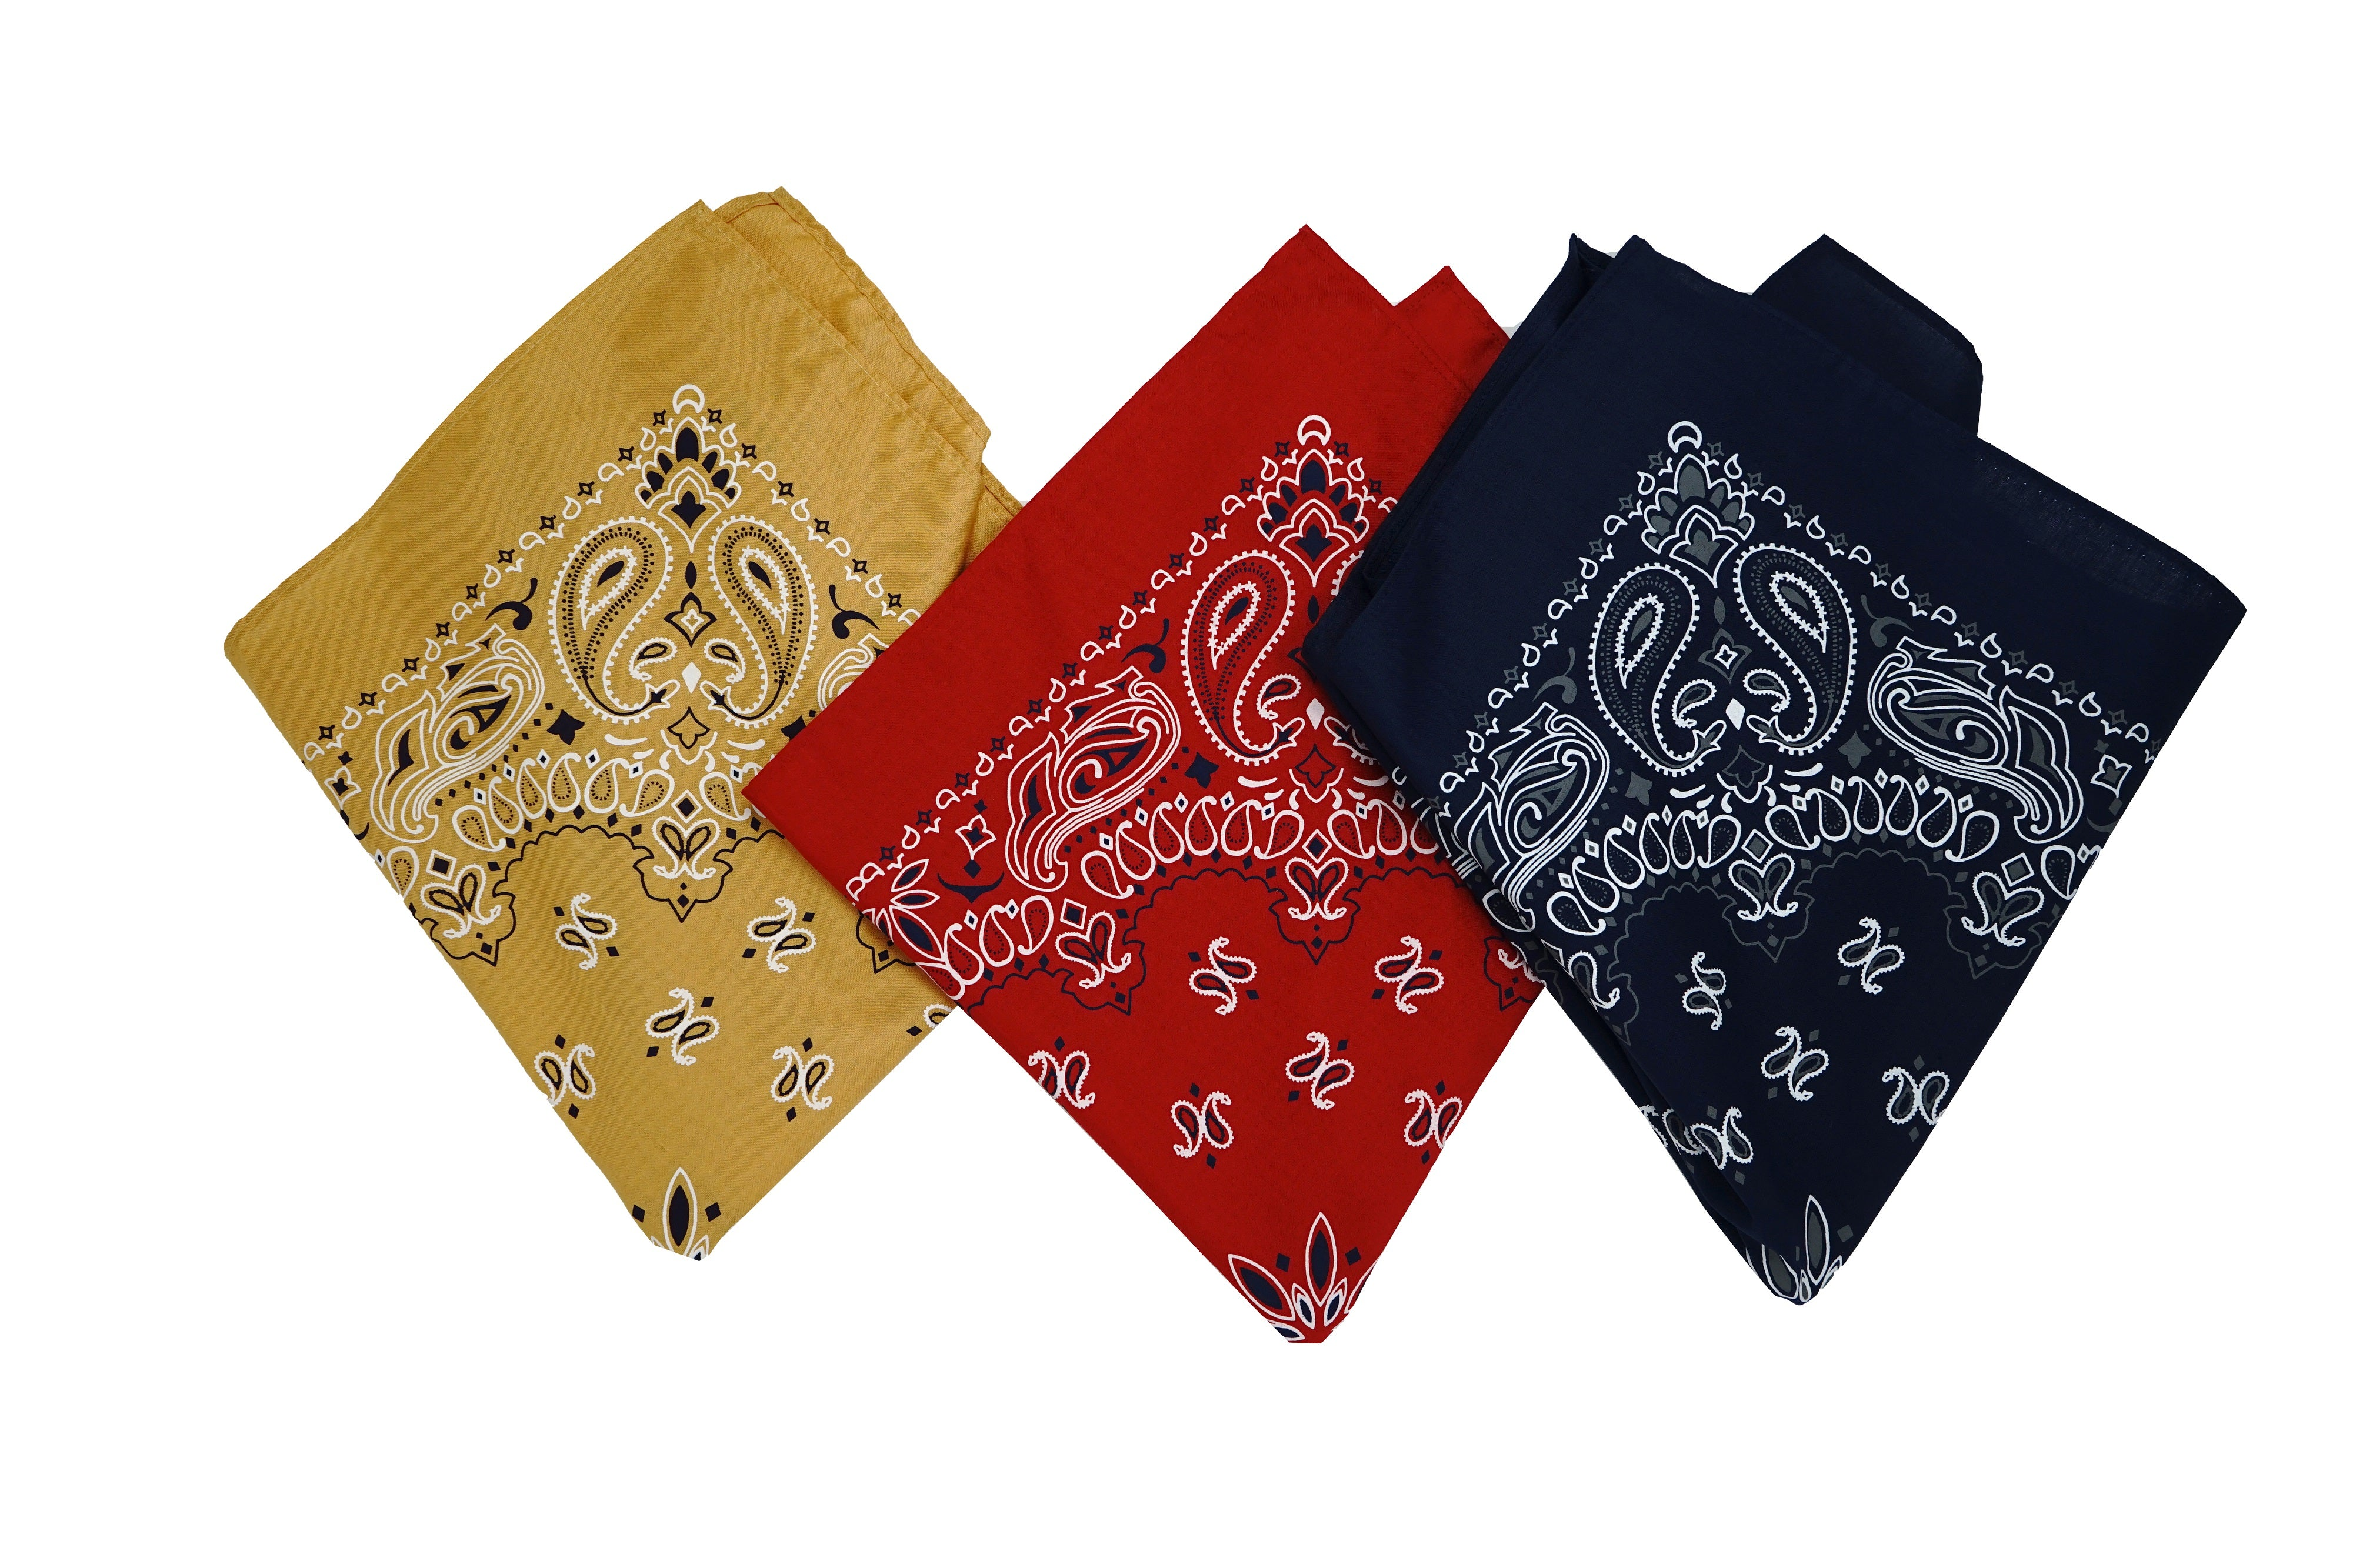 "Stitch & Sparkle Bandana 3-Pack 100% Cotton - Good Quality-Multi Purpose Bandana Gift Sets-Headband, Wrap, Protective Coverage 22"" x 22"", Mustard, Red, and Ink"